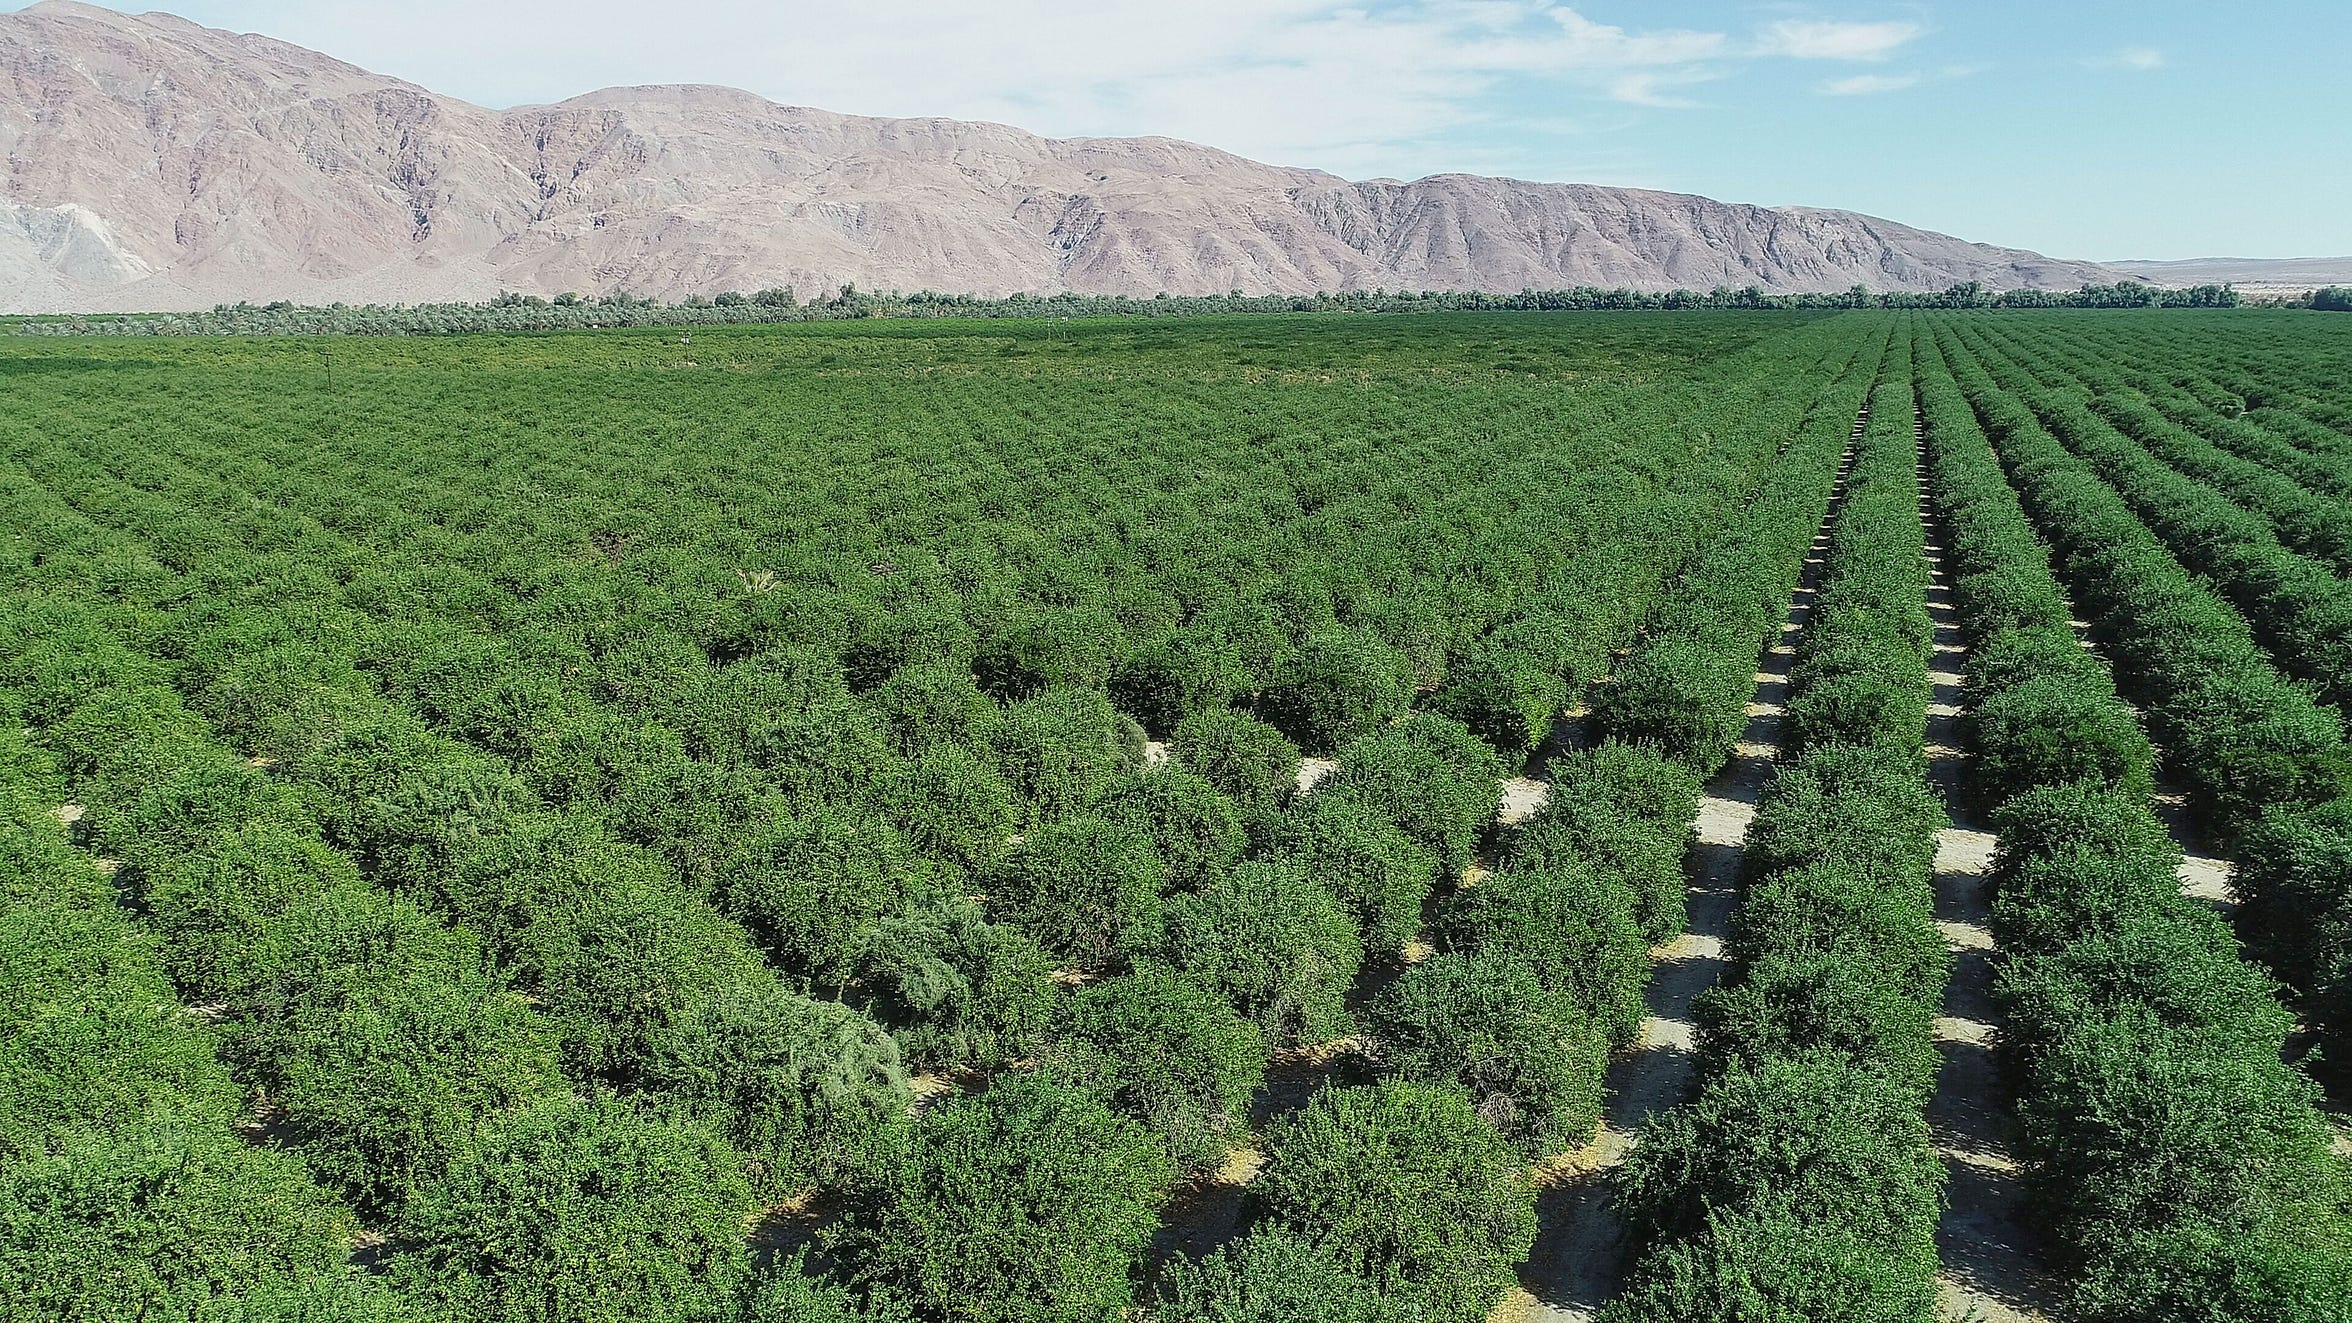 Seley Ranches produces grapefruits, lemons and tangerines in the desert near Borrego Springs. The orchard relies on groundwater pumped from the aquifer.